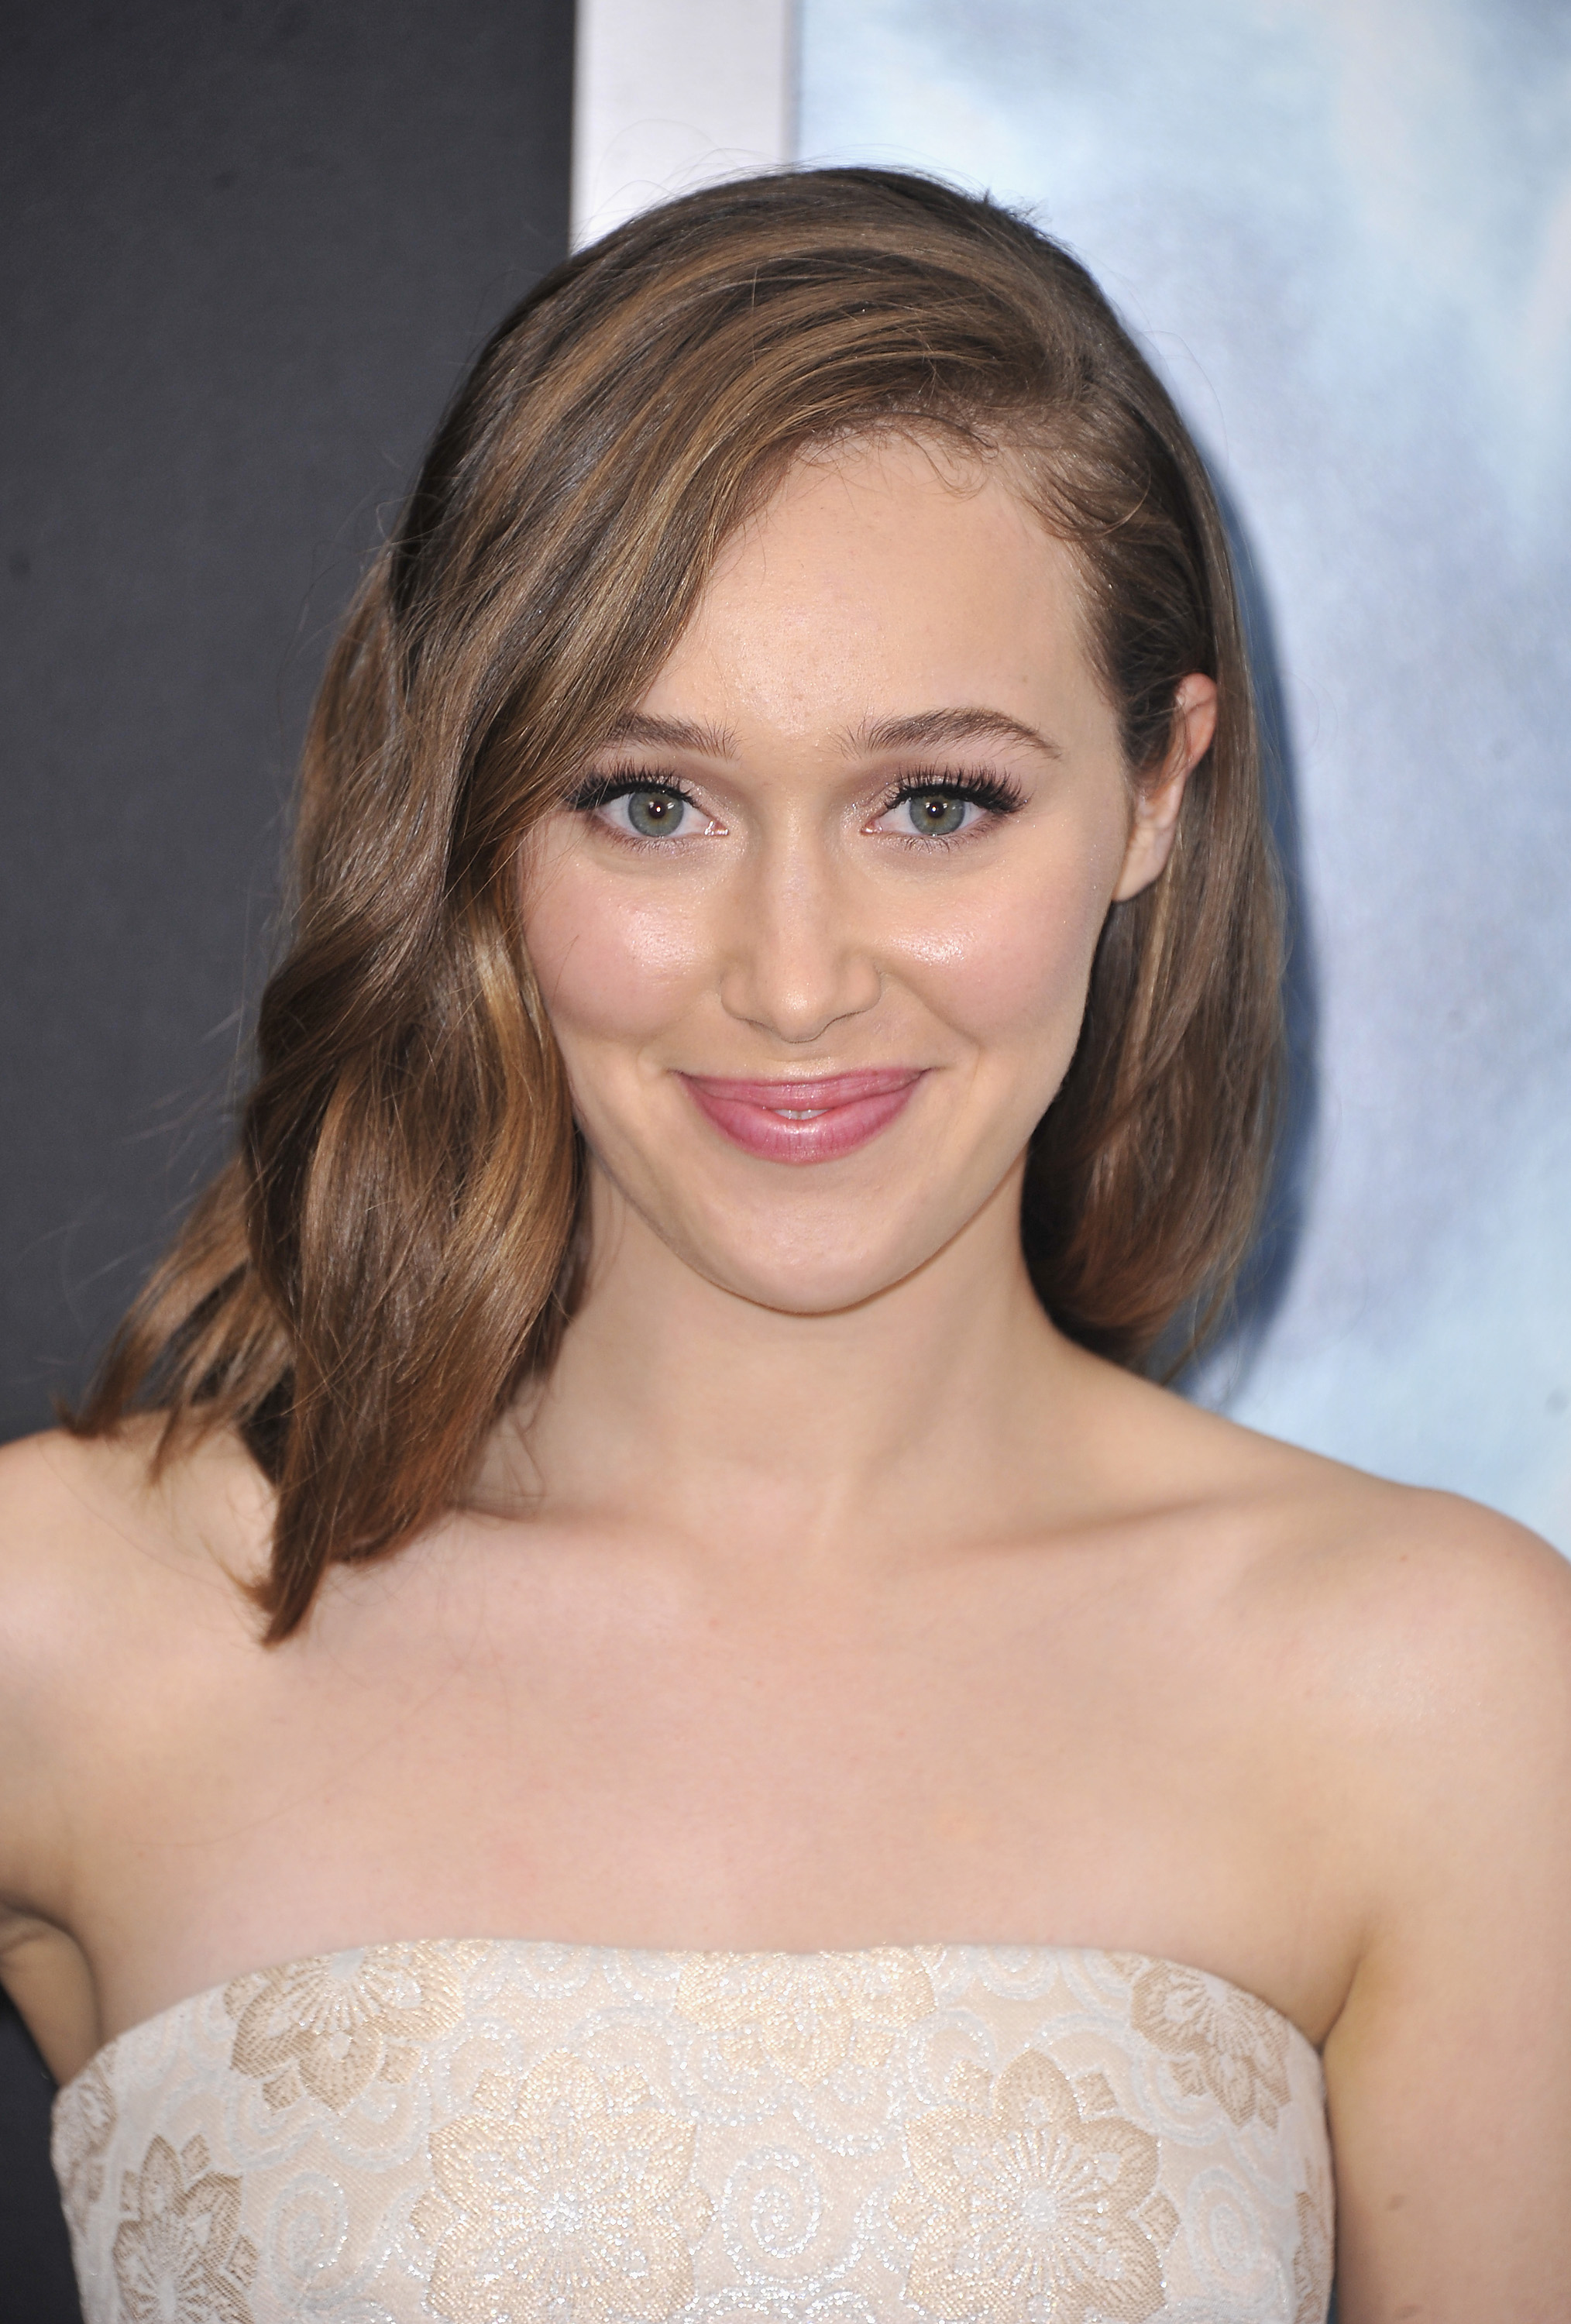 Actress Alycia Debnam Carey attends the  Into The Storm  premiere at AMC Lincoln Square Theater on Aug. 4, 2014 in New York City.